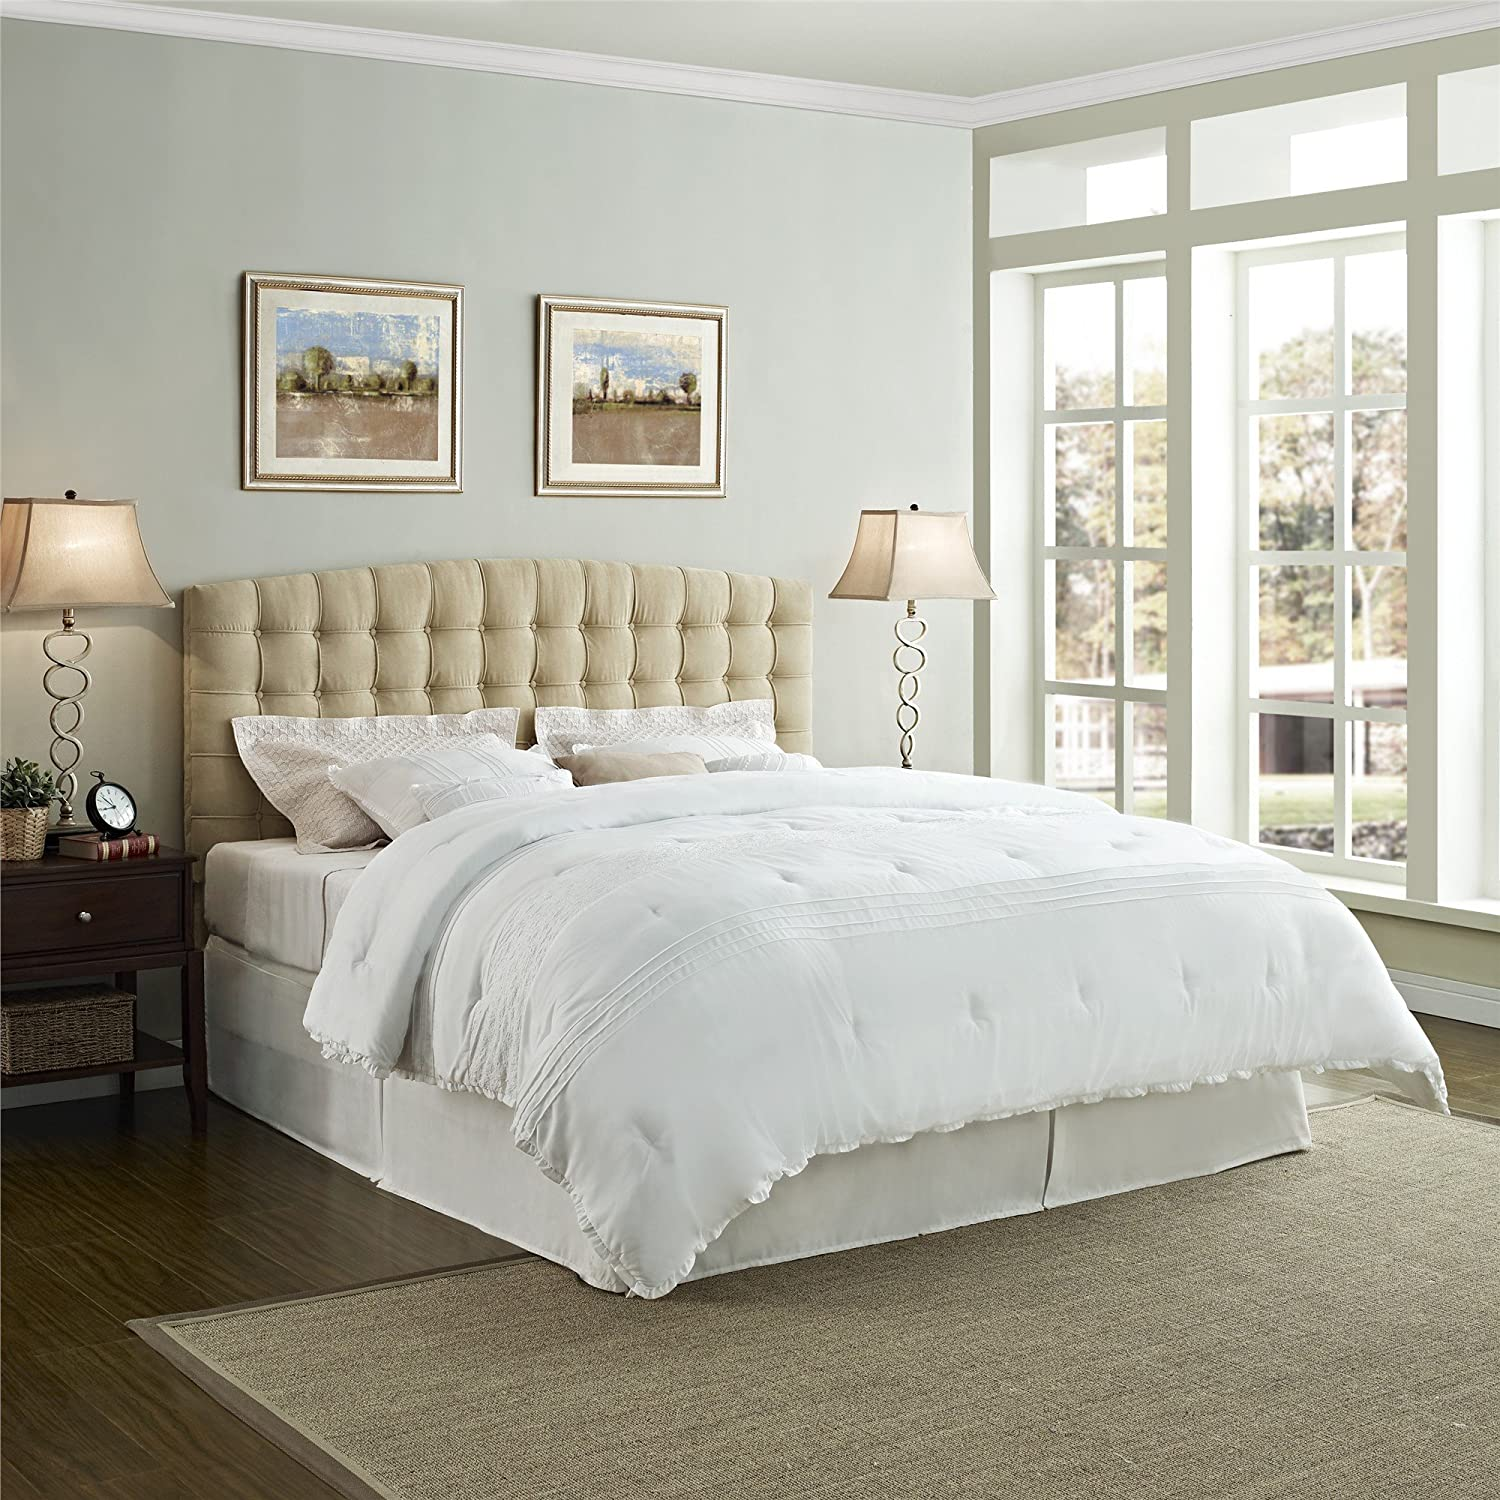 headboards as incredible diy door slipcover metal luxury queenqueen for large favorite retro xfile tufted leather padded upholstered trendy of wells head inspiring size headboard wood and white trend beds frame full barn with storage styles fabric king tall black